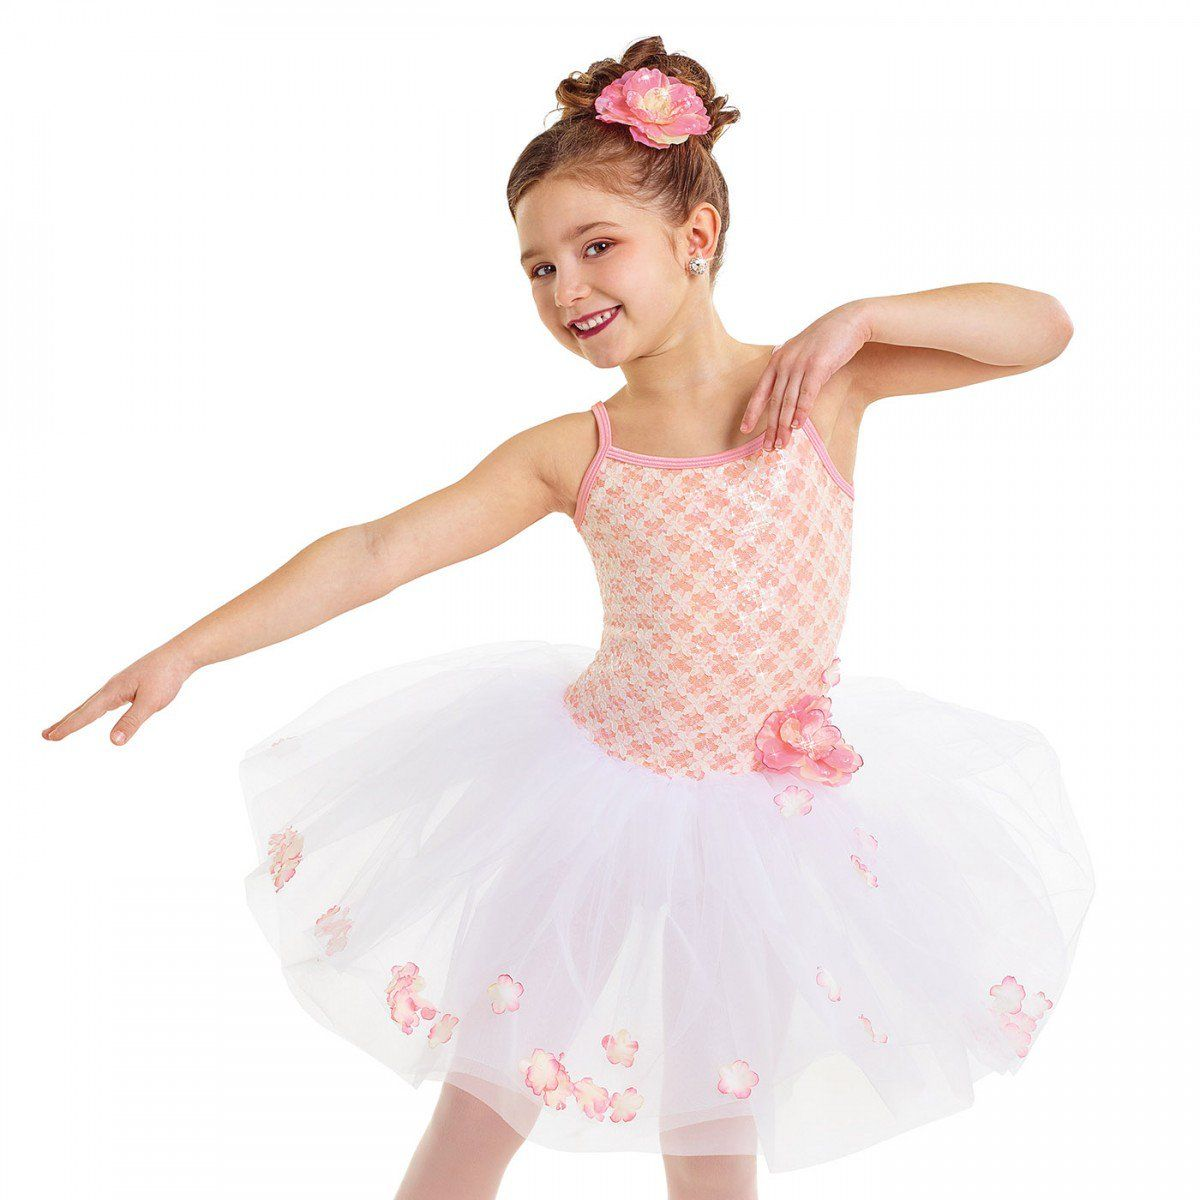 Smell The Roses Tutu Cute Costumes Toddler Dance Dance